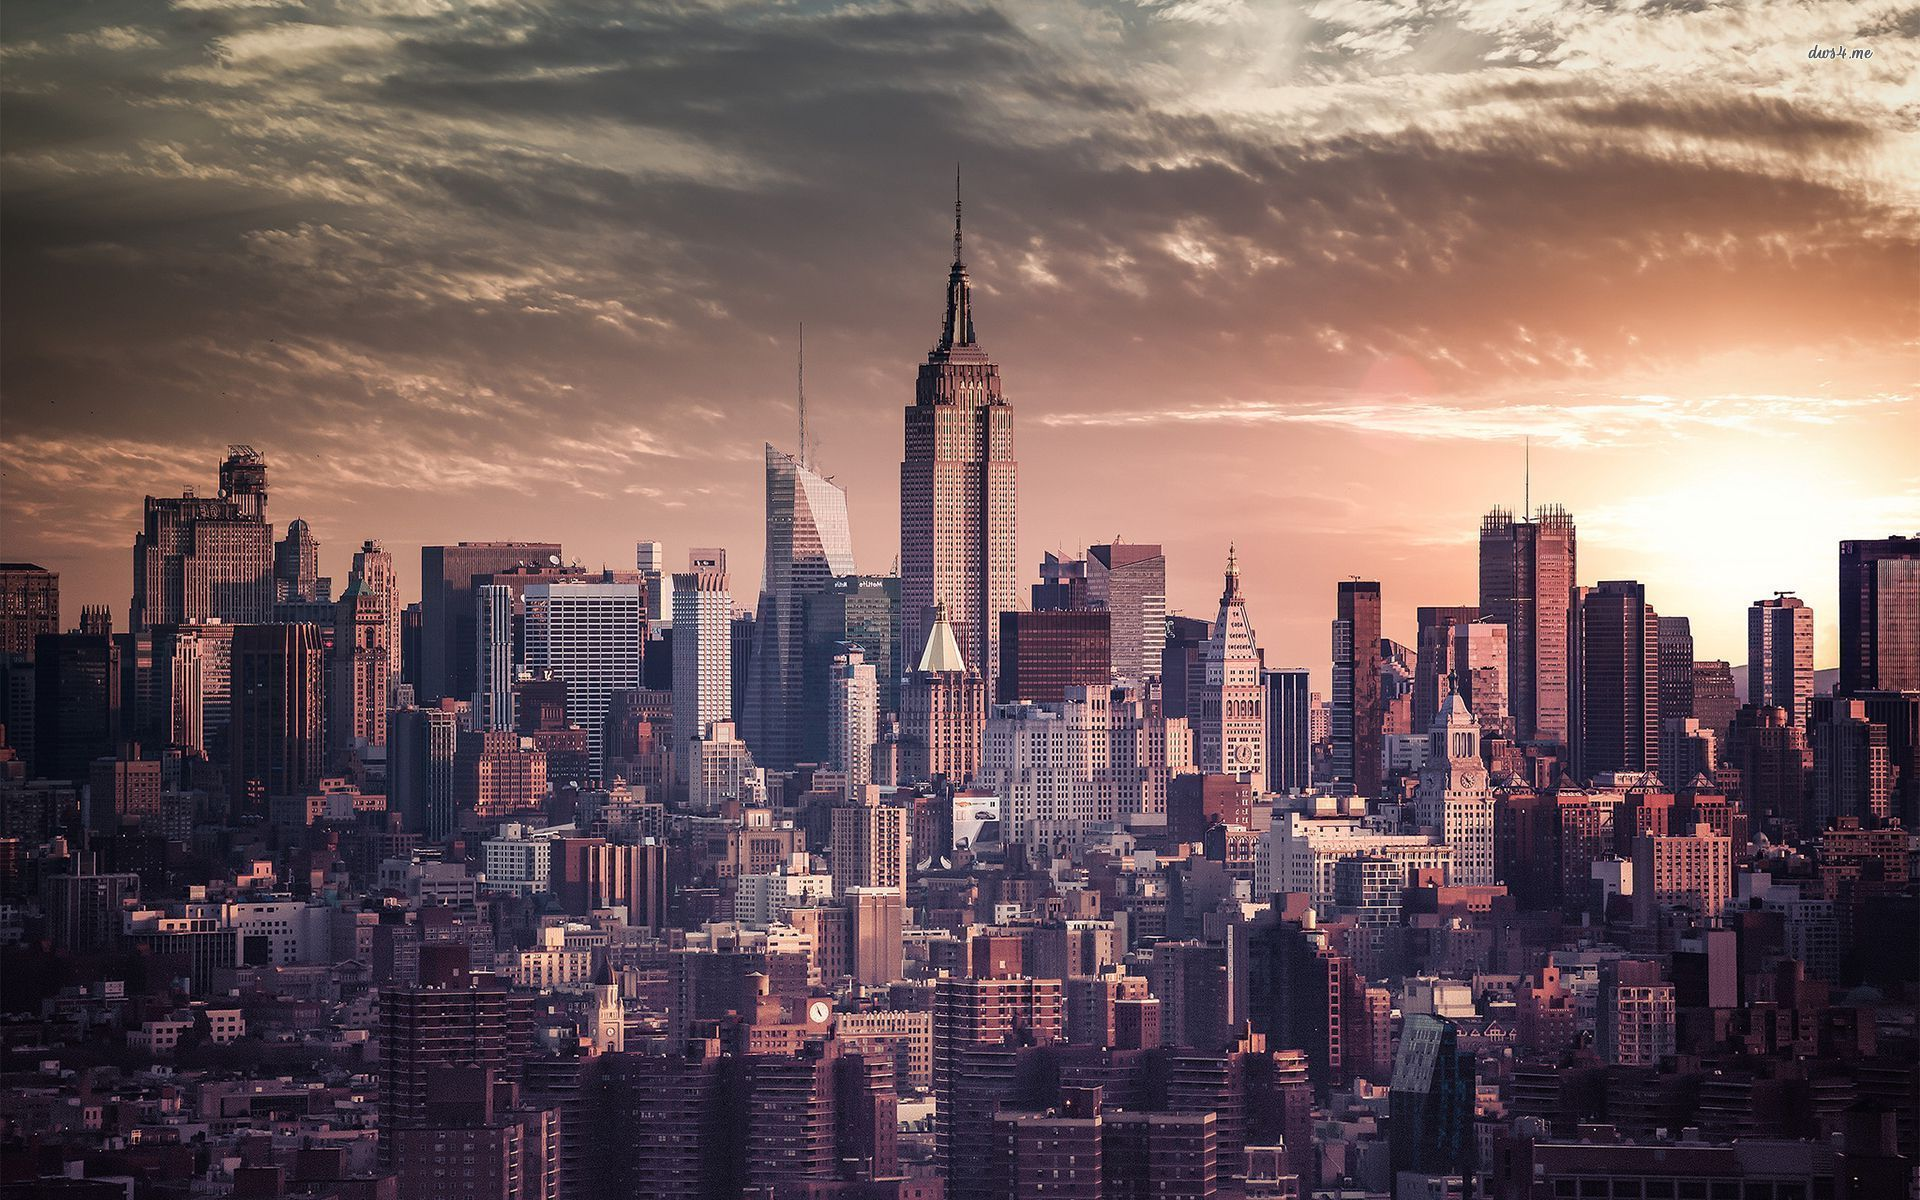 24 New York City 4k Wallpapers On Wallpapersafari